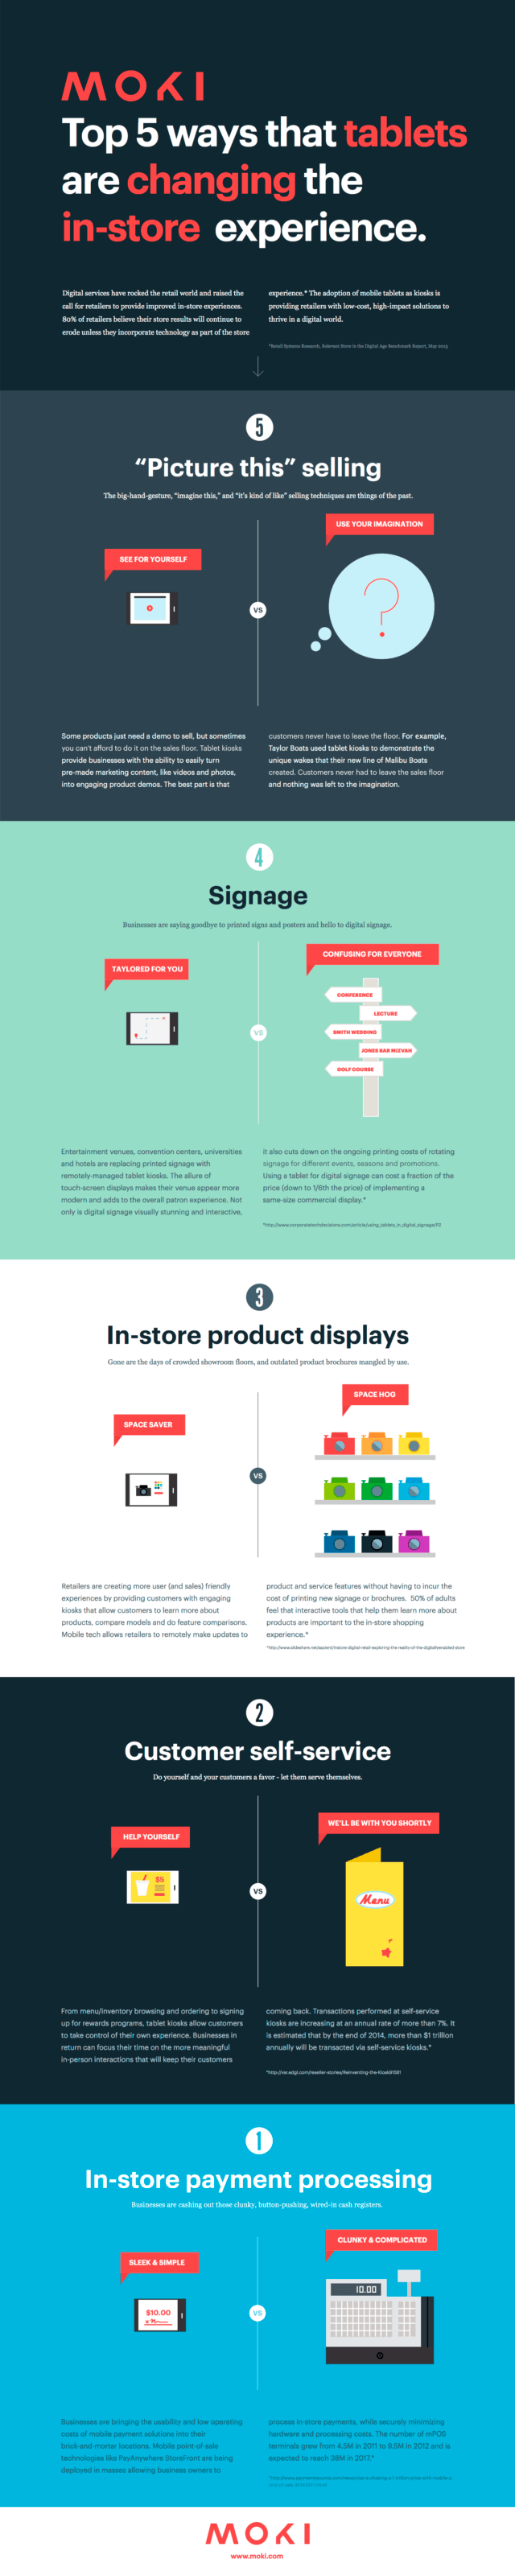 tablets-instore-experience